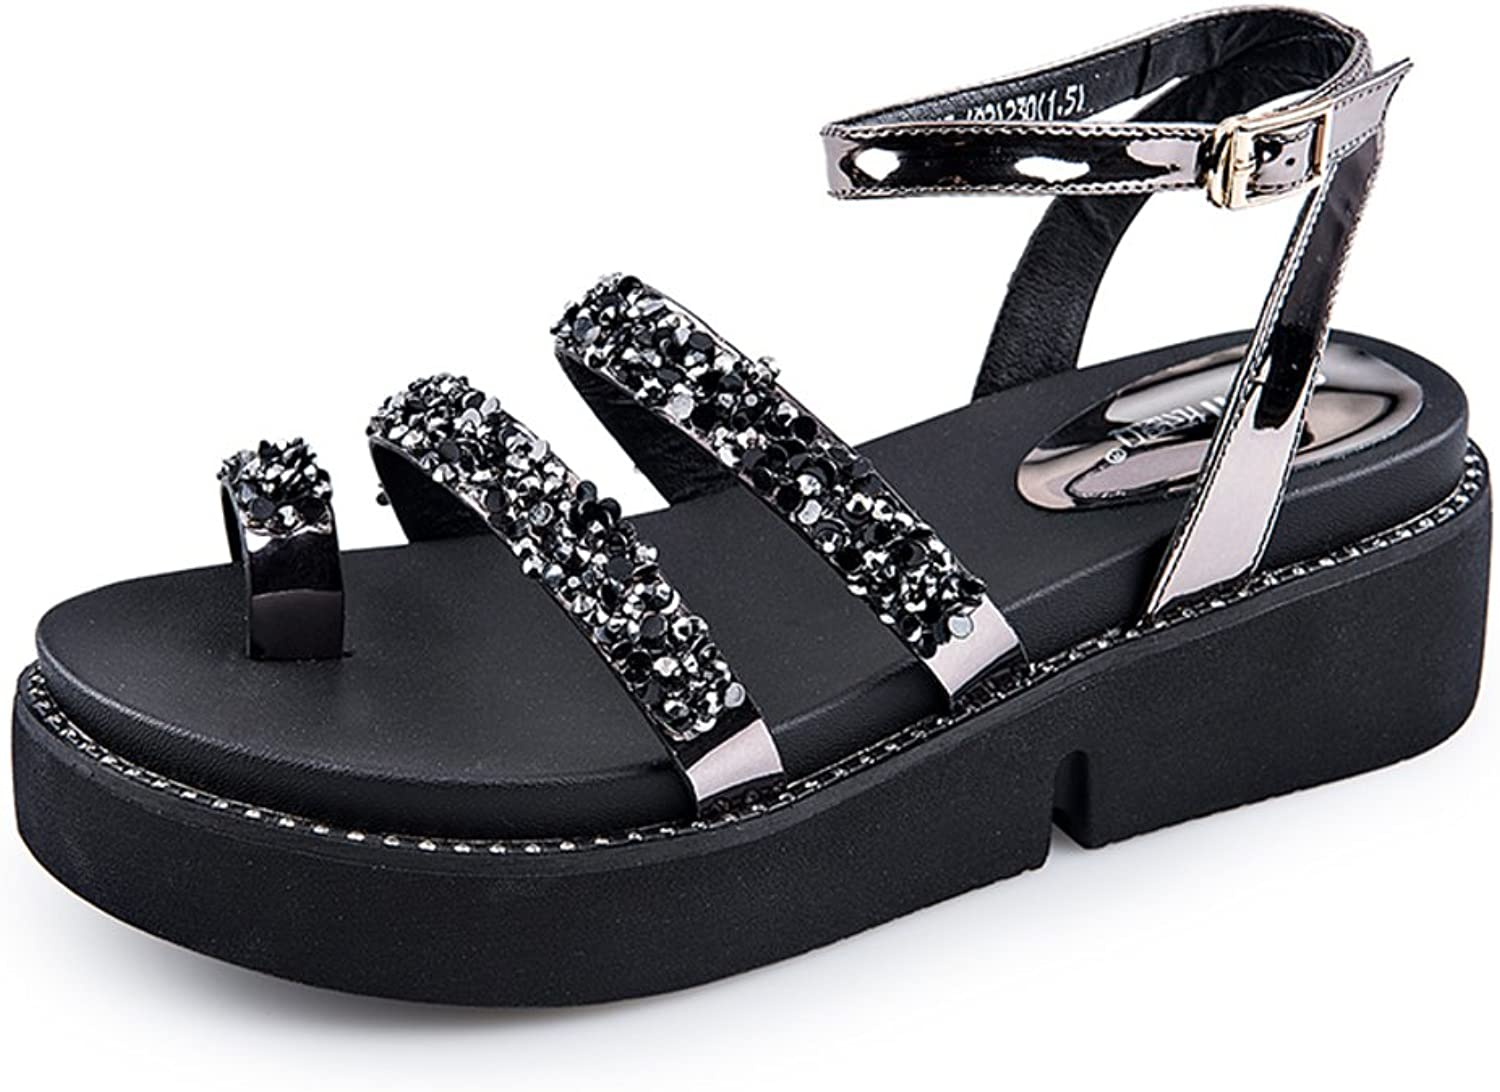 MET RXL Summer,Circled Sandals Muffins,Thick and Low shoes Ladies High Heels